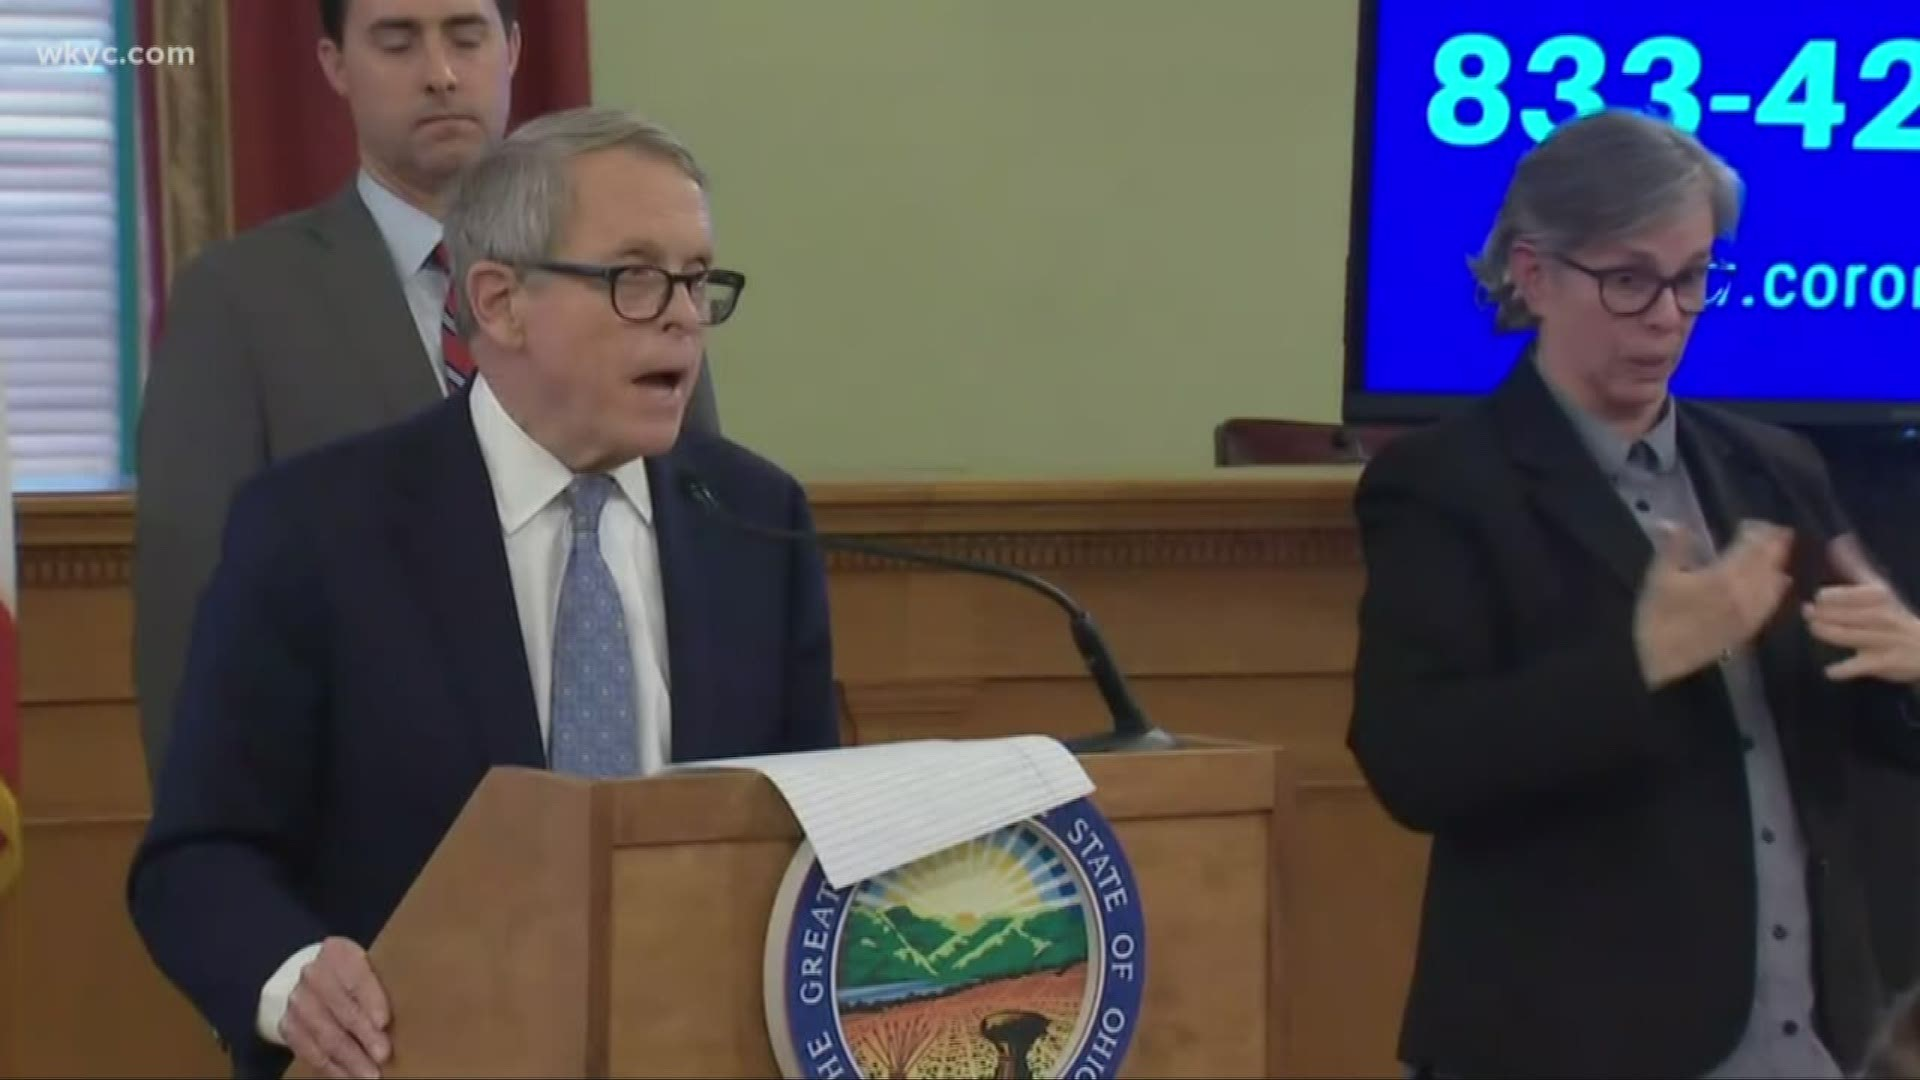 Ohio Gov Mike Dewine Issues Order Against Elective Surgeries Wkyc Com